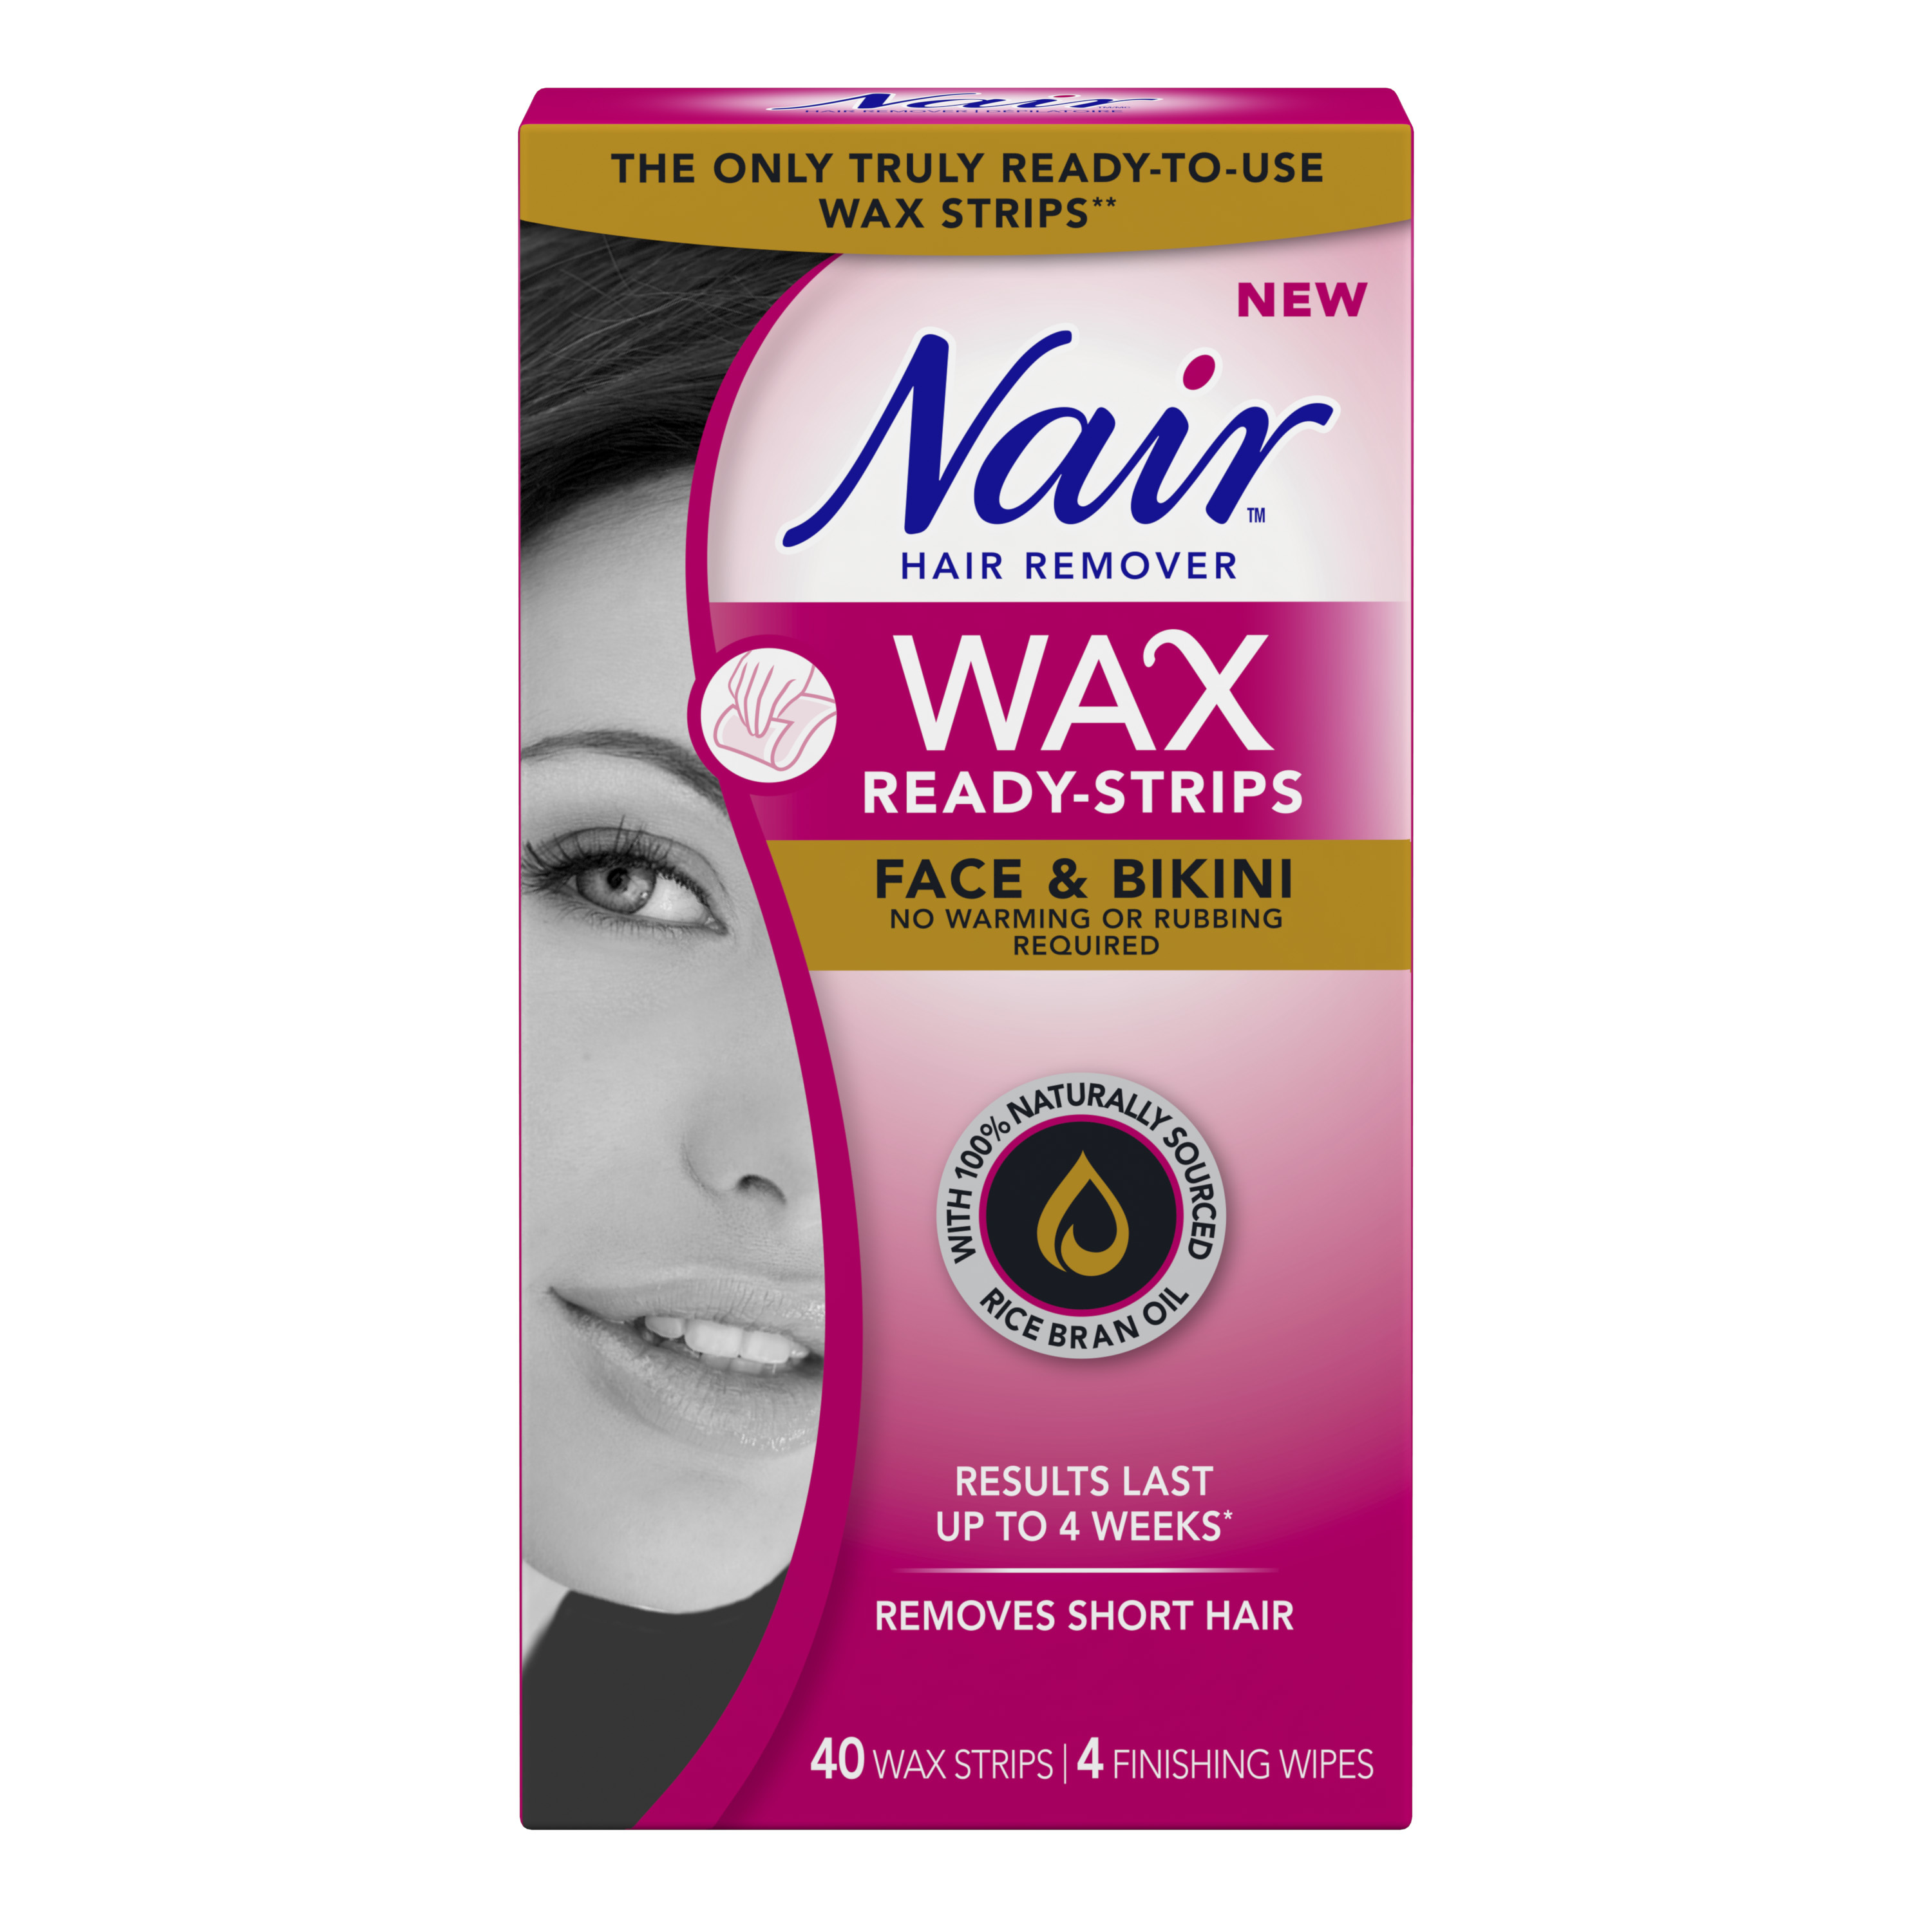 Nair Wax Ready Strips Face Bikini Reviews In Hair Removal